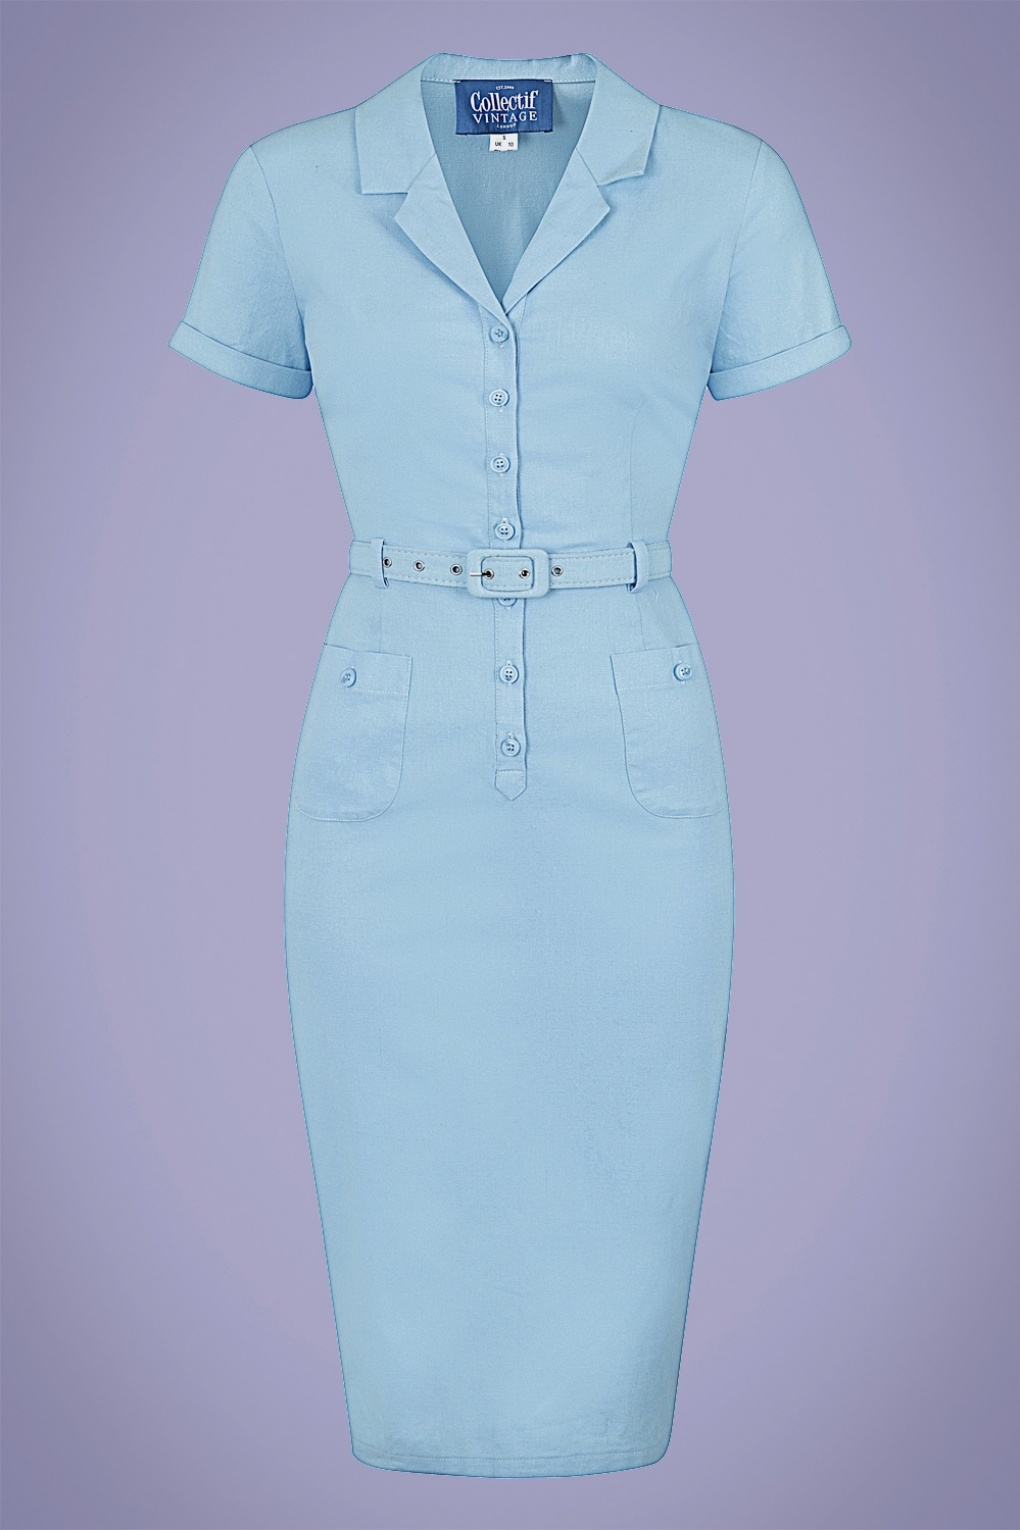 Vintage 50s Dresses: Best 1950s Dress Styles 50s Caterina Pencil Dress in Light Blue £59.64 AT vintagedancer.com